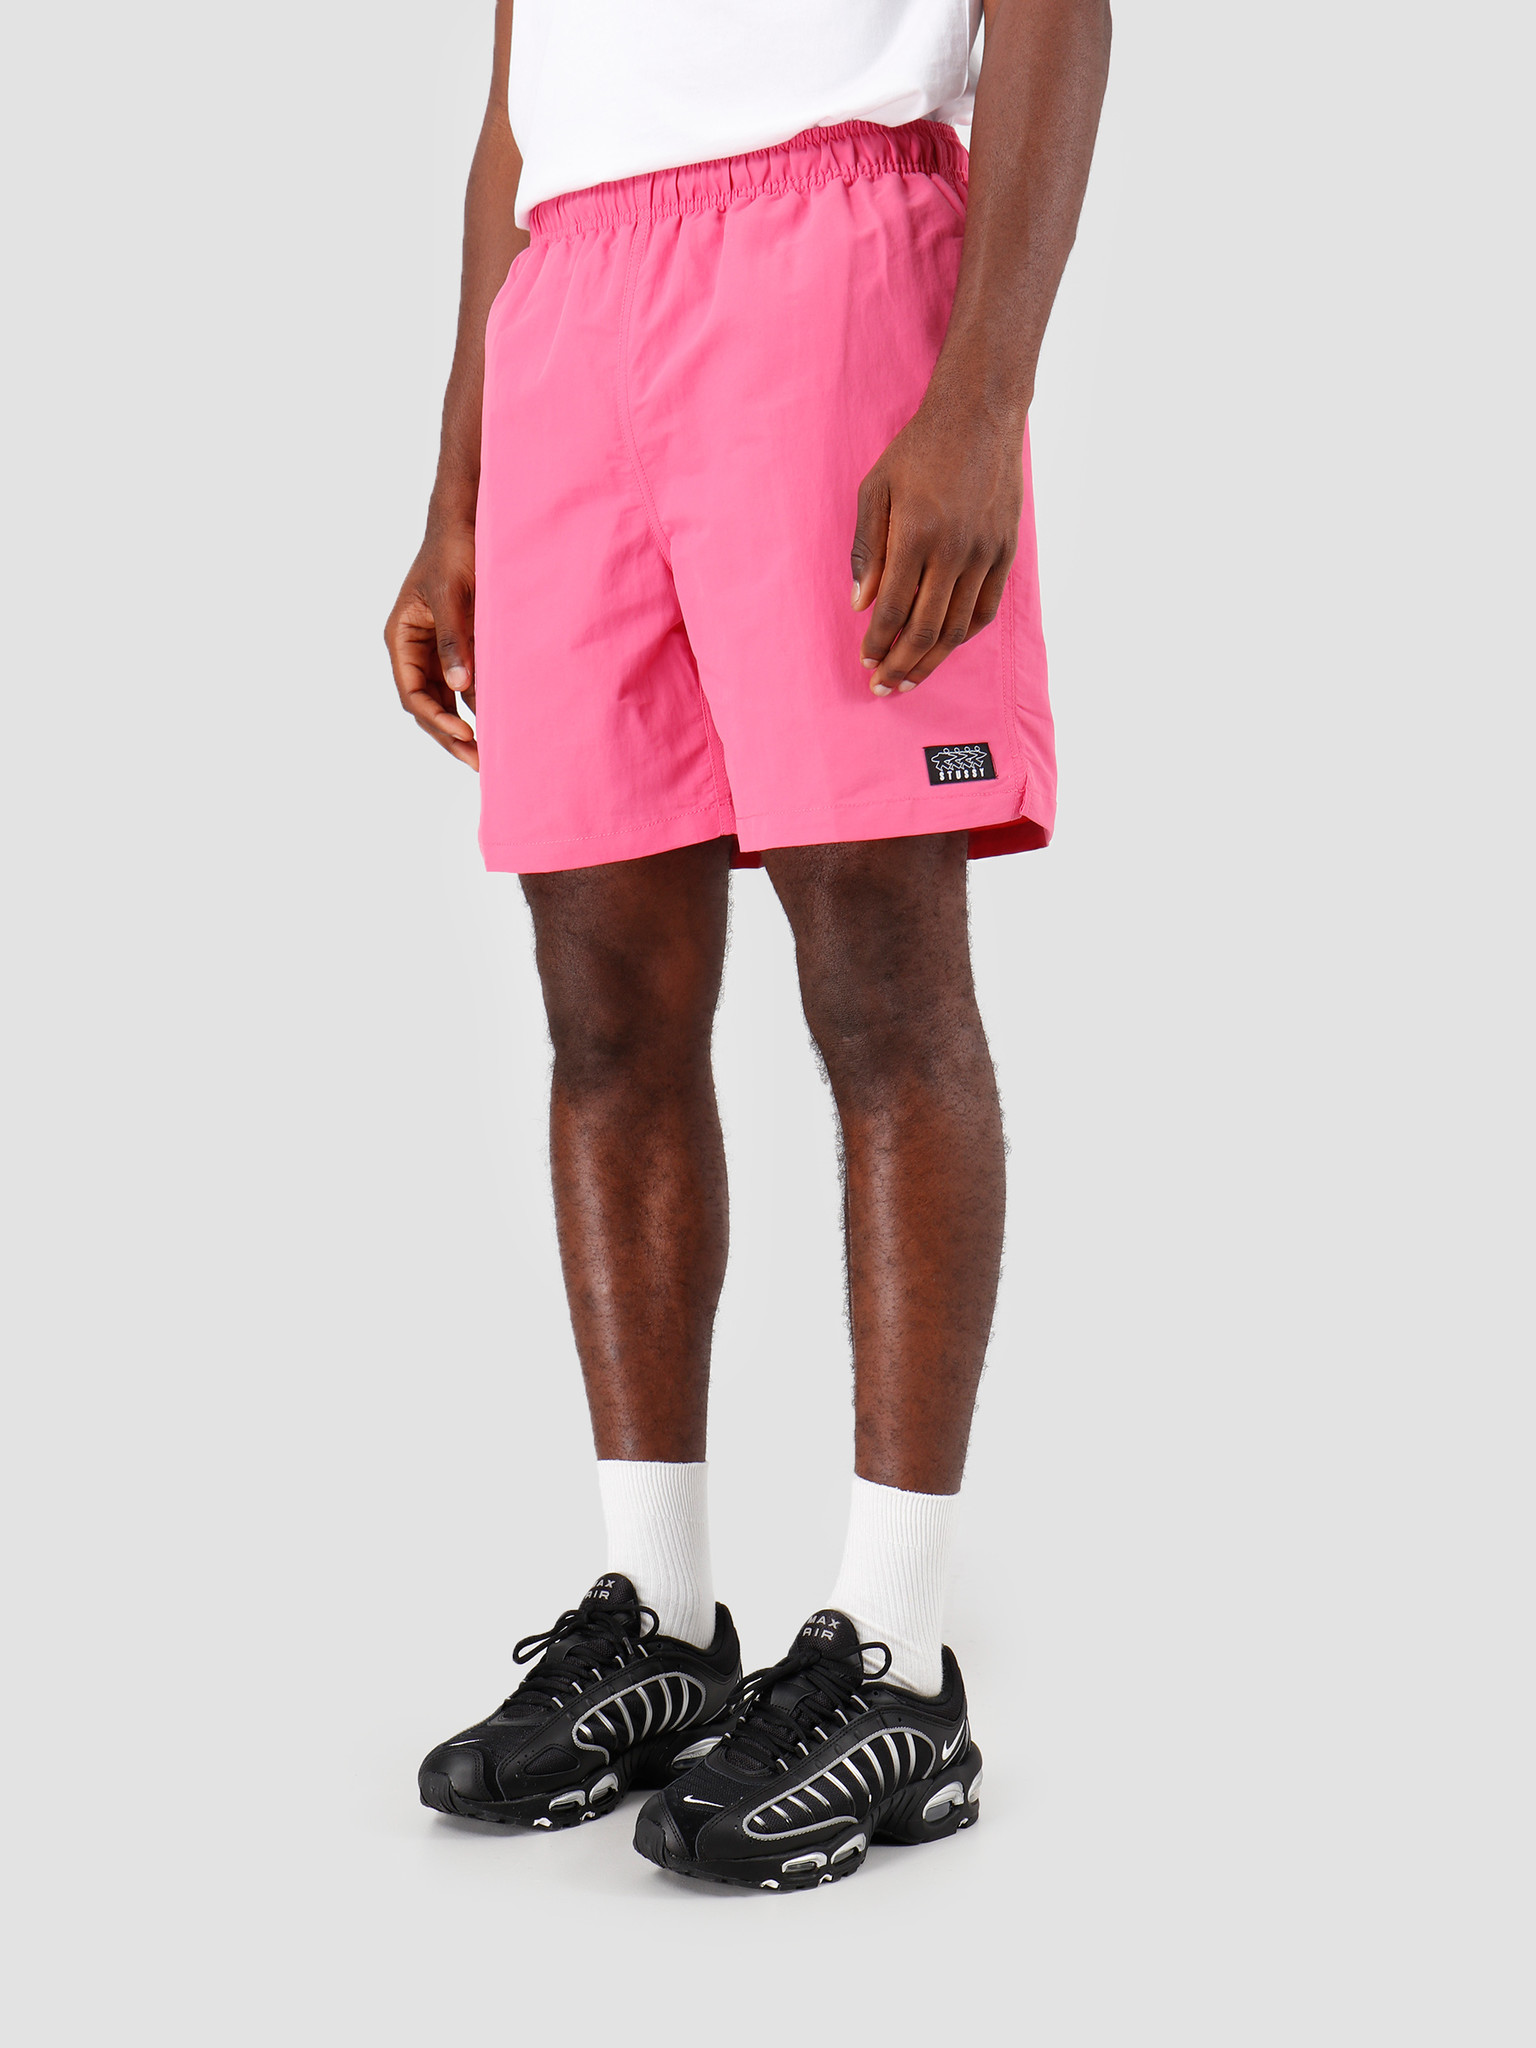 Stussy Stussy New Wave Water Short Pink 0604